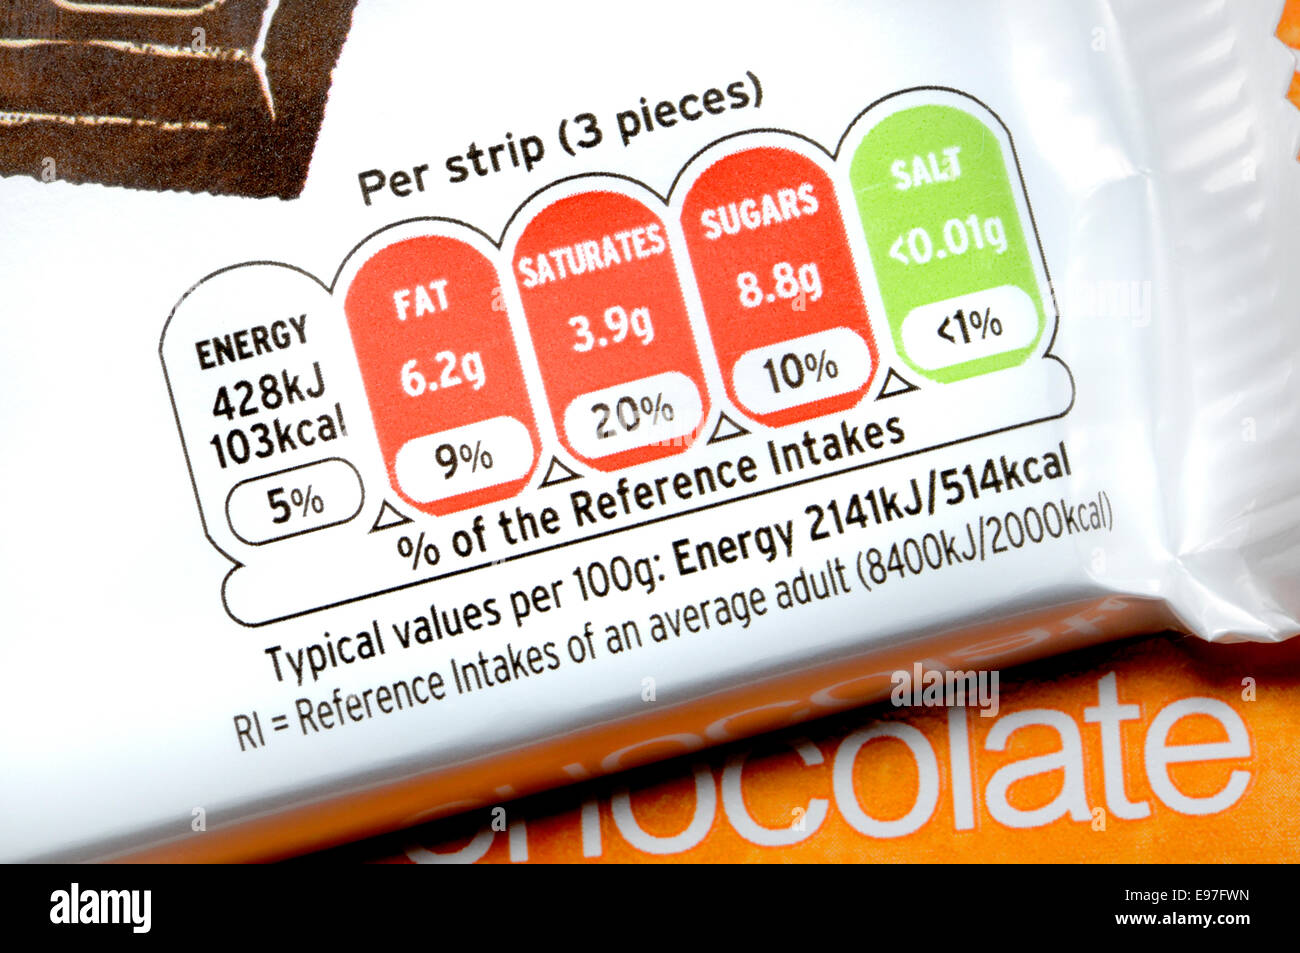 Chocolate packaging showing nutritional information - Stock Image